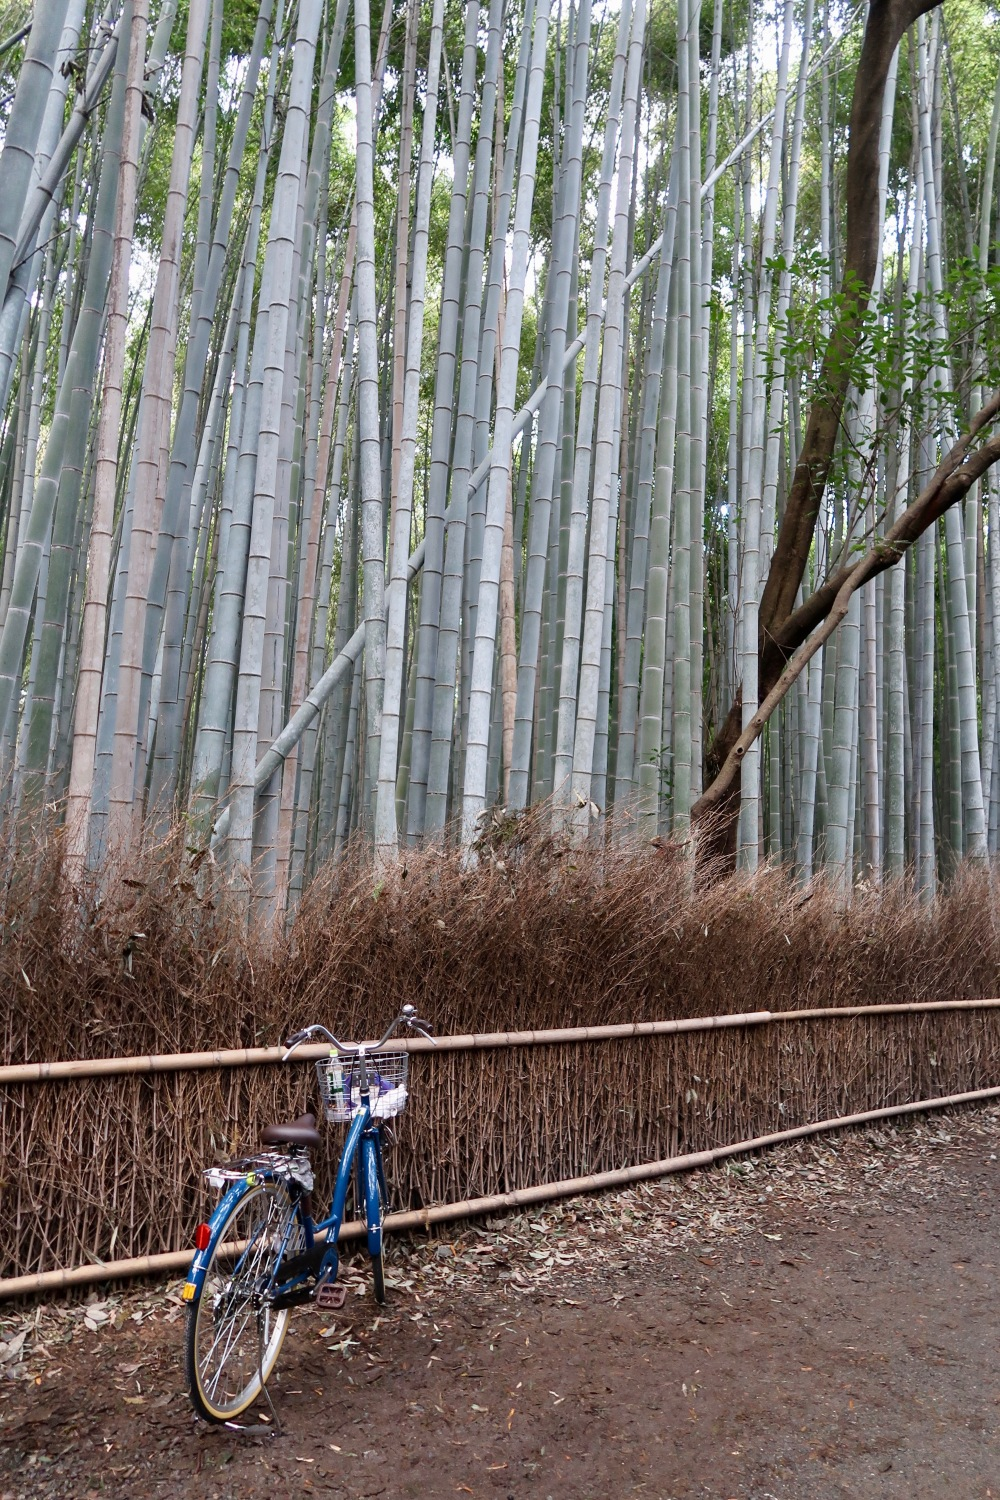 Lonely bike and bamboo. Not for long. I wonder how I managed to take this pic